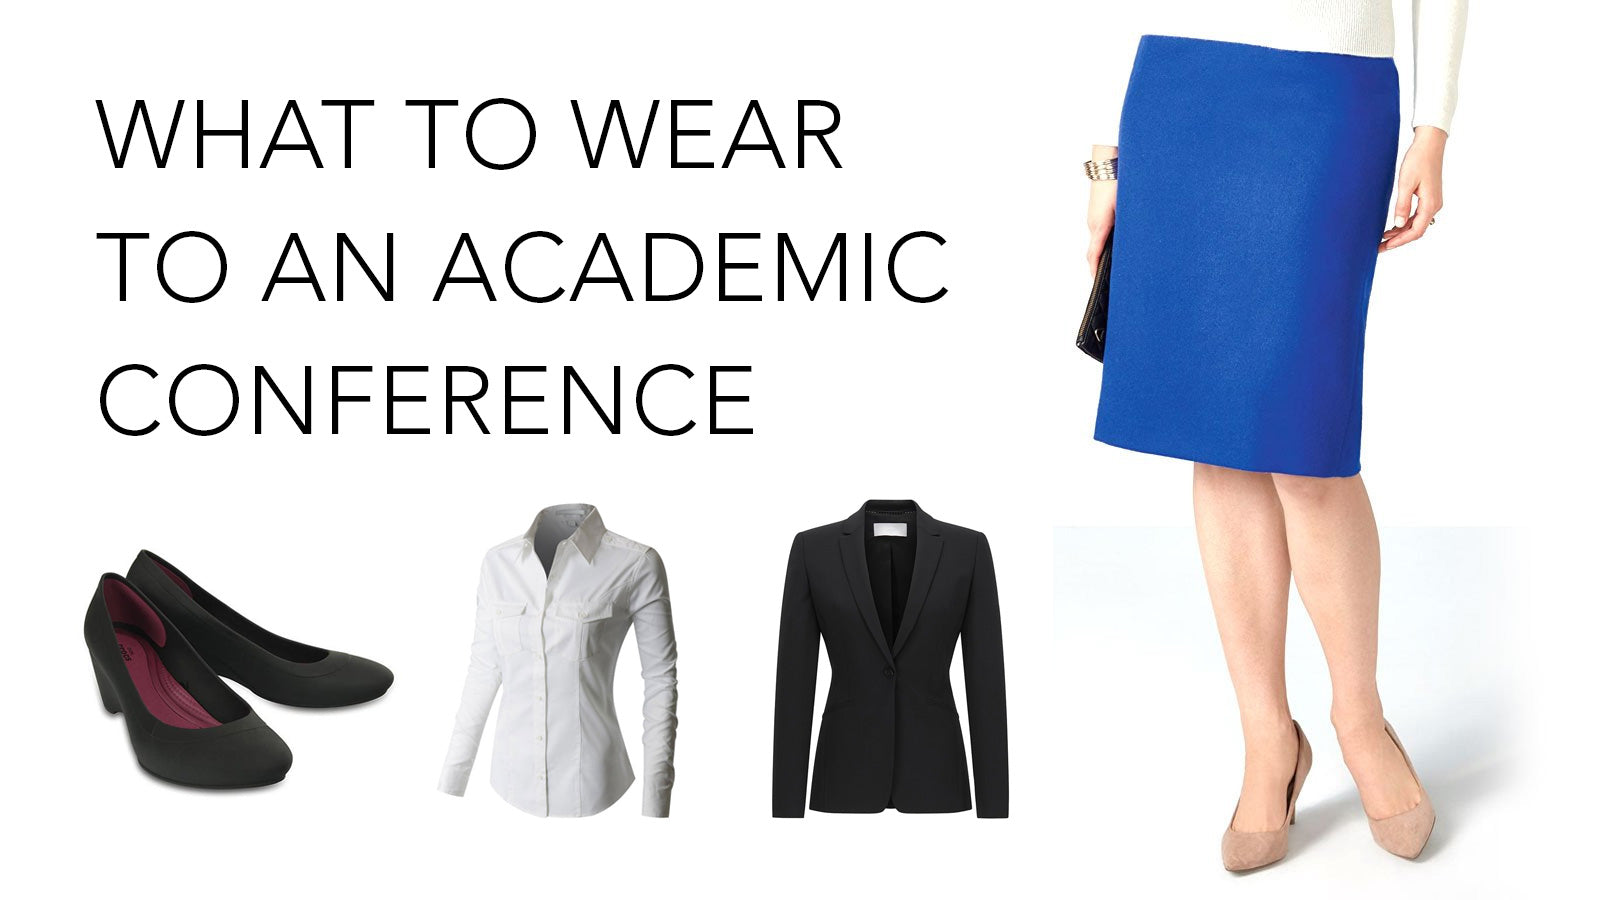 What to wear to an academic conference (Women's Guide)